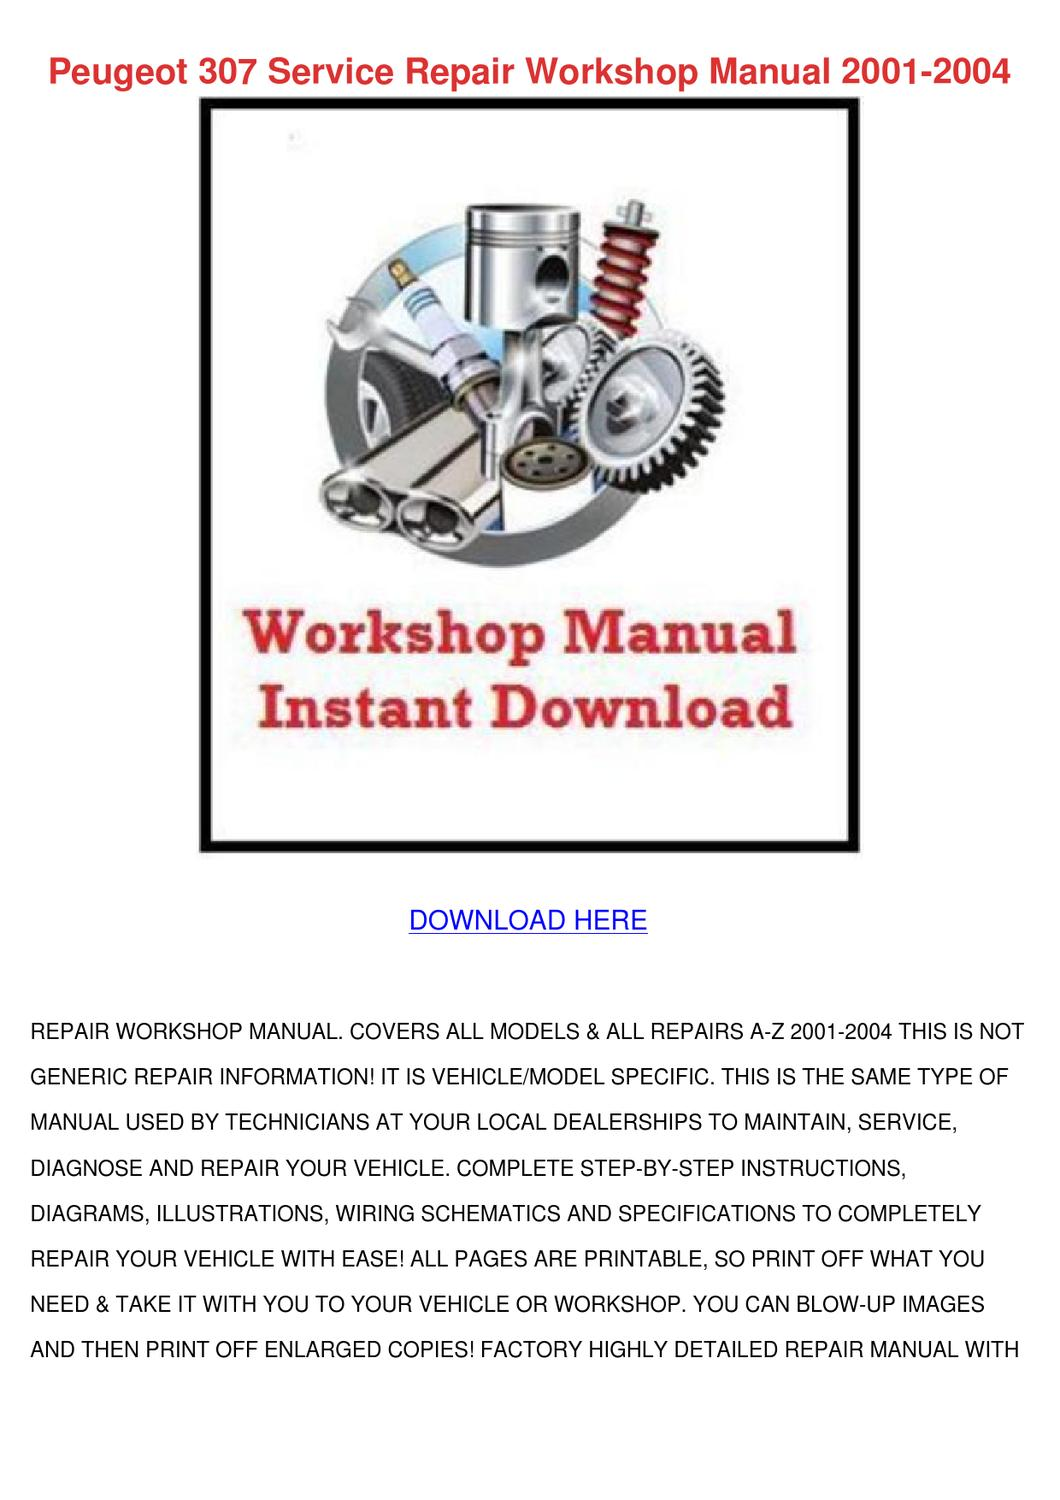 Peugeot Engine Schematics Wiring Library Acura Mdx 2010 Rear Fuse Box Diagram 307 Service Repair Workshop Manual 20 By Darrinchambliss Issuu